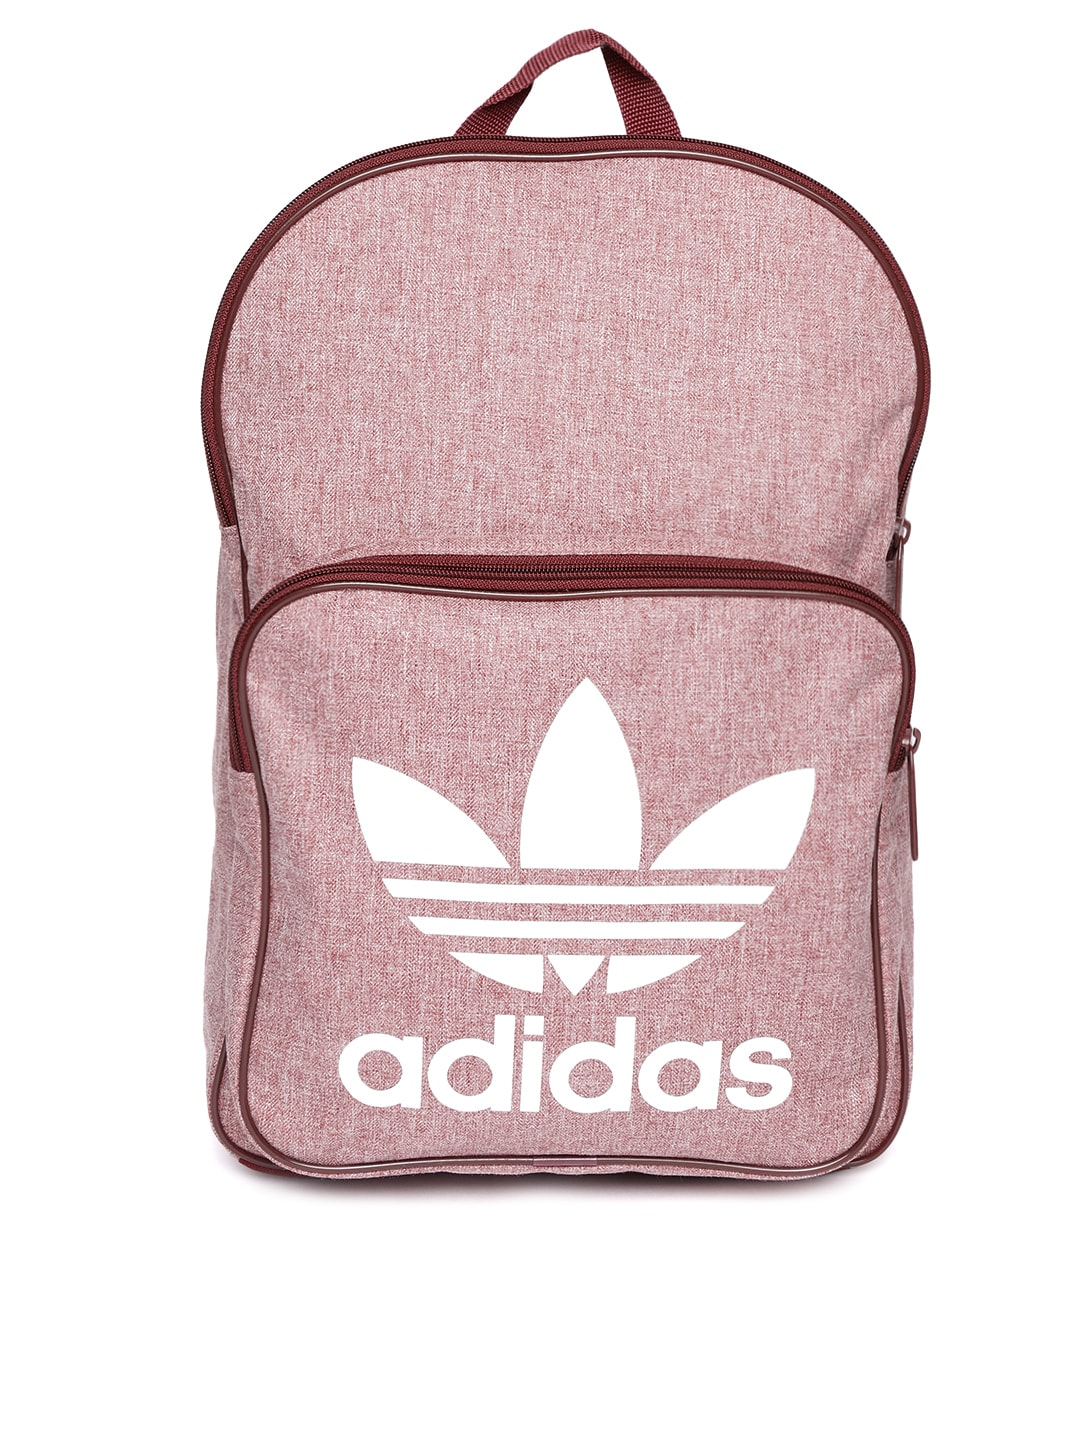 b3a7c0408542 Originals Bags Backpacks - Buy Originals Bags Backpacks online in India